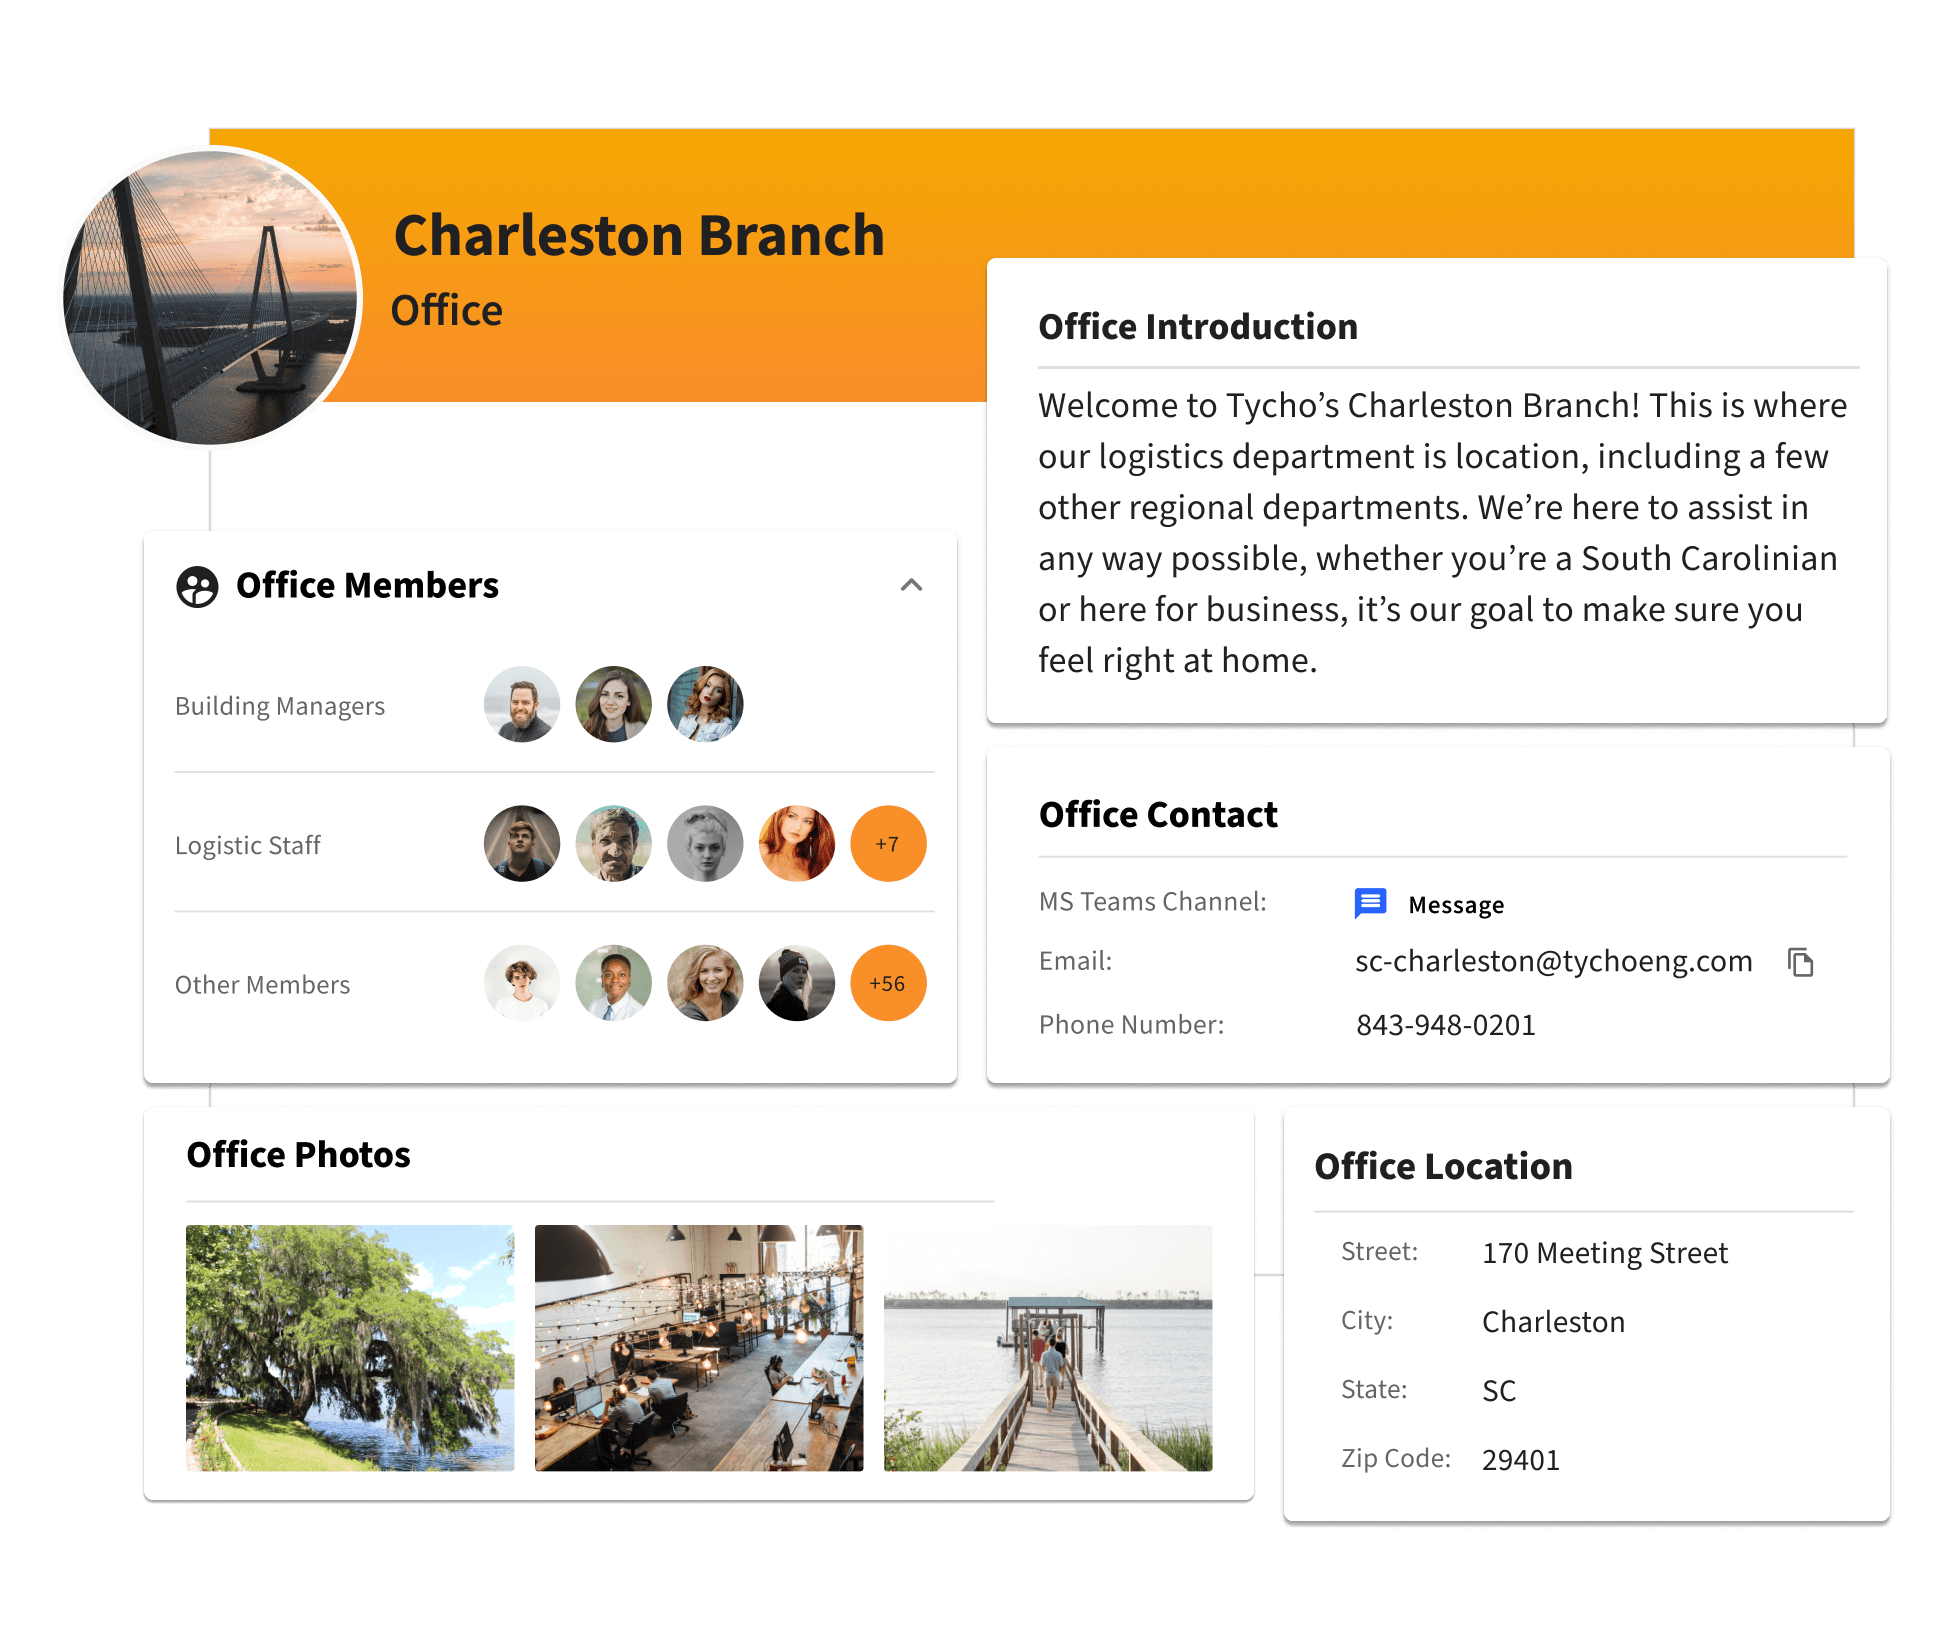 A profile for an office location